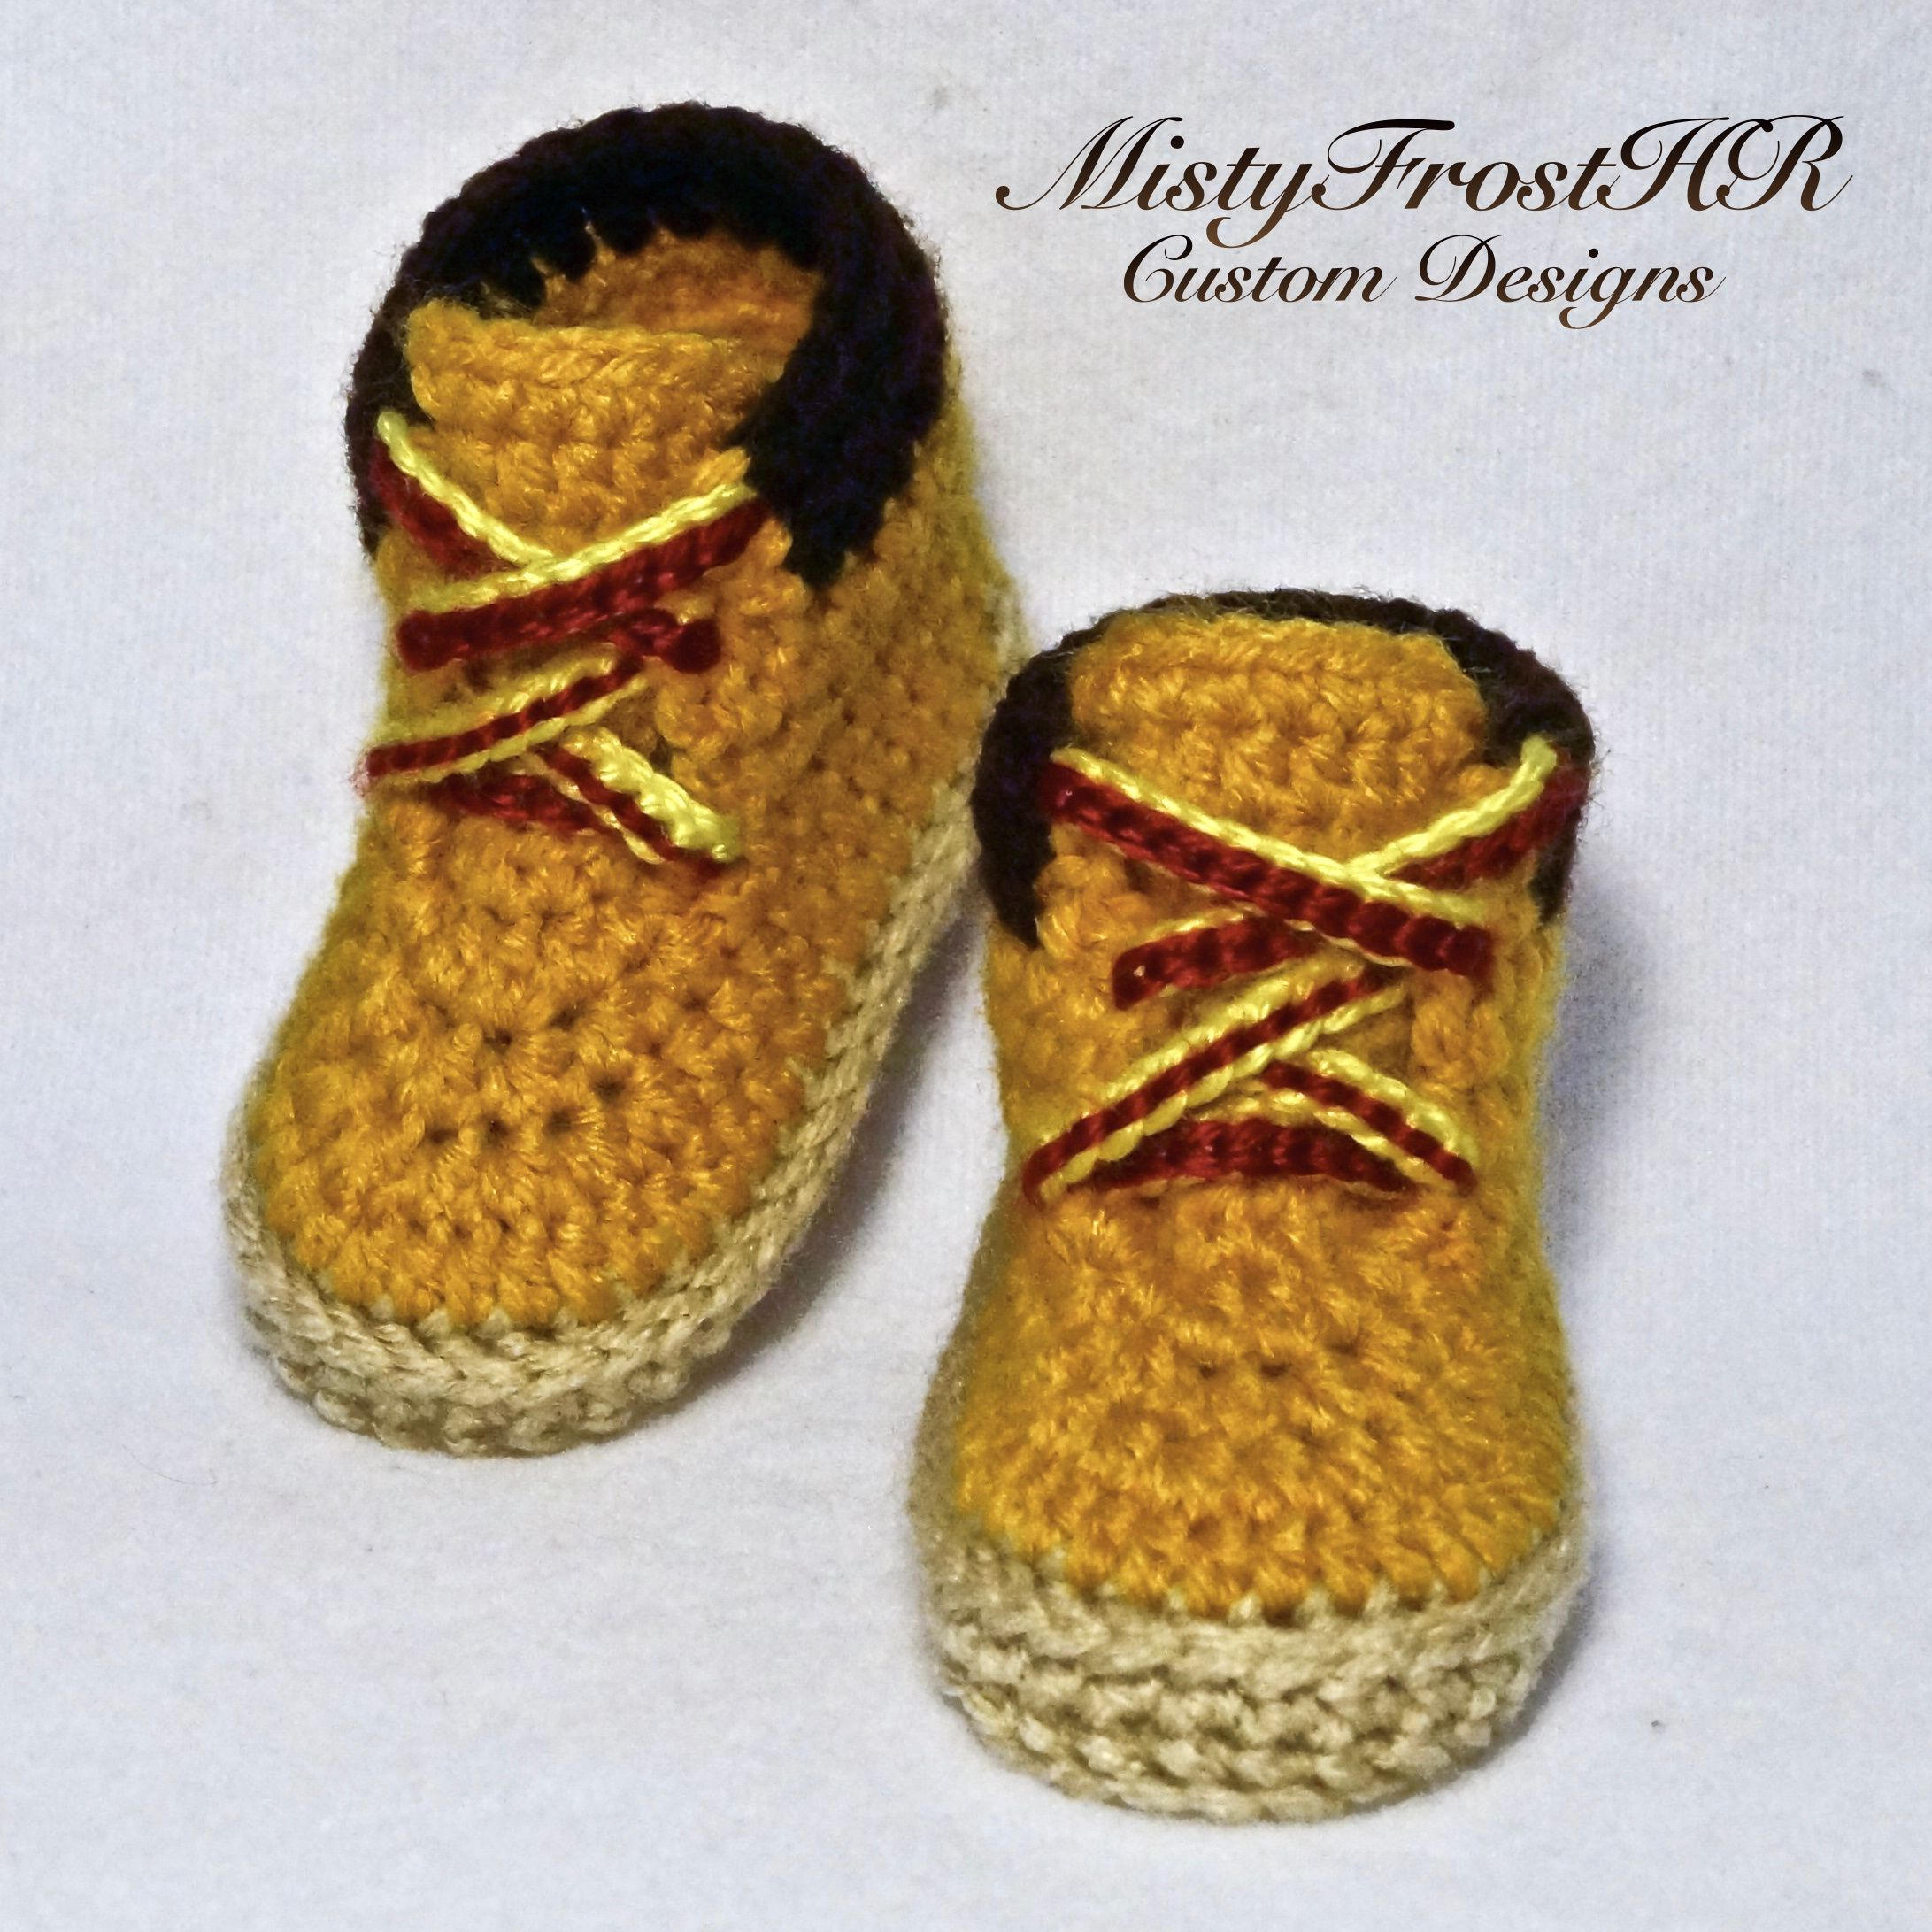 bb10bad9d9cf4 Crochet Timberland Inspired Baby Work Boots - Available in any color ...